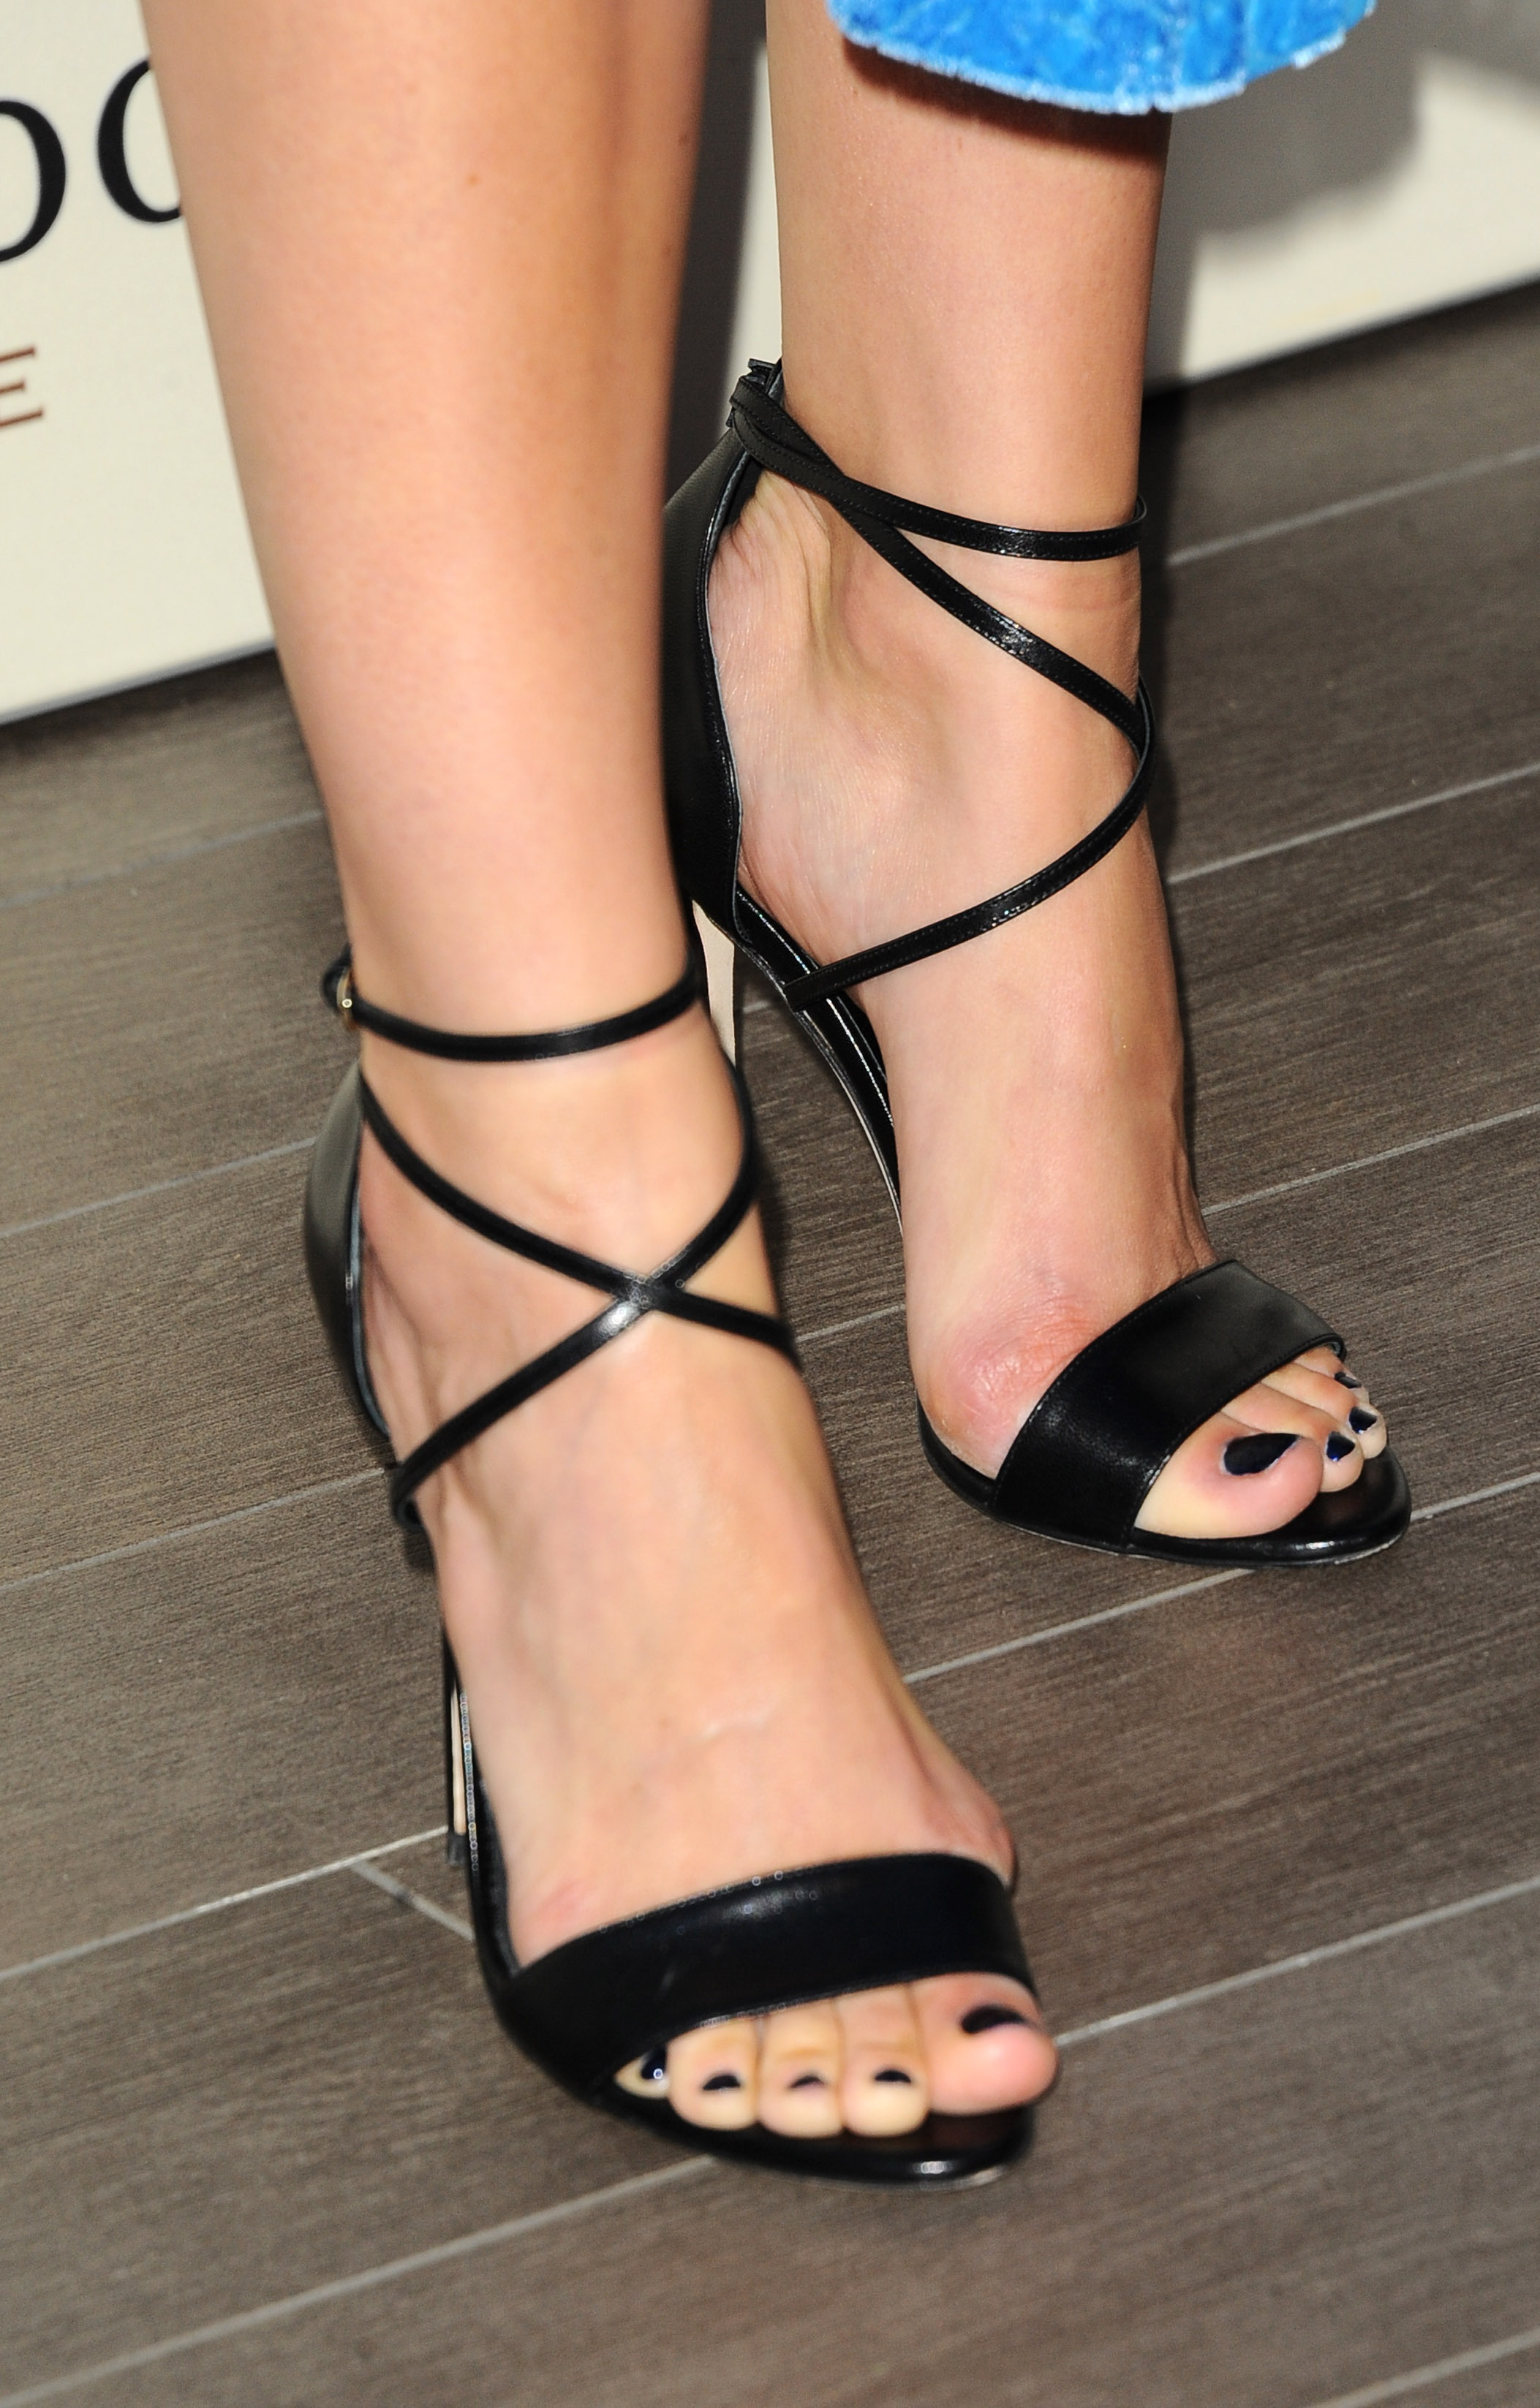 with very pretty toes i think its a shame how she is abusing her feet